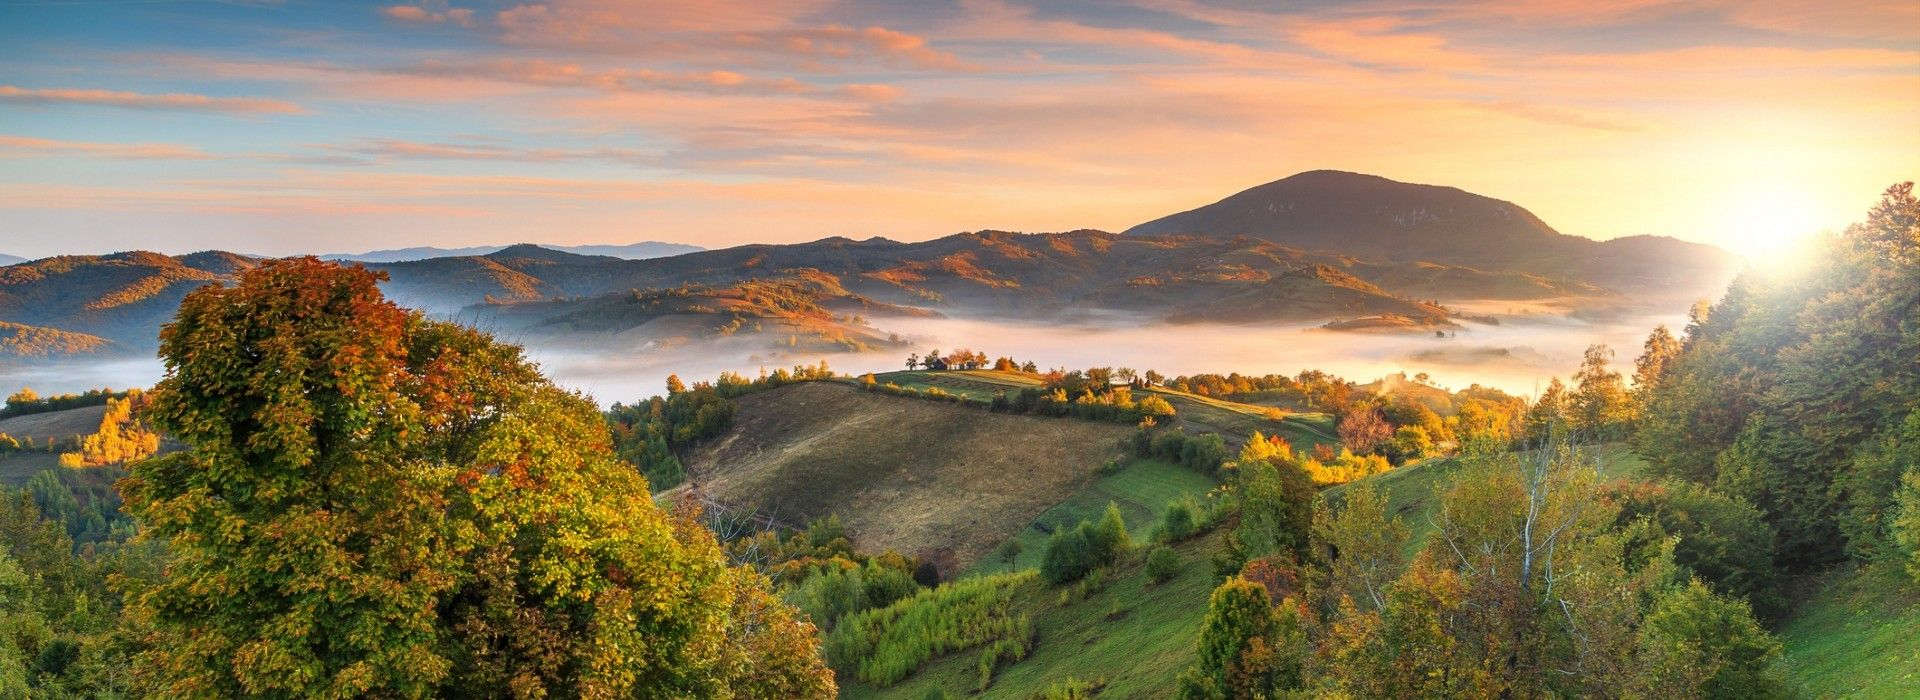 Beach, romance, getaways and relaxation Tours in Eastern Europe